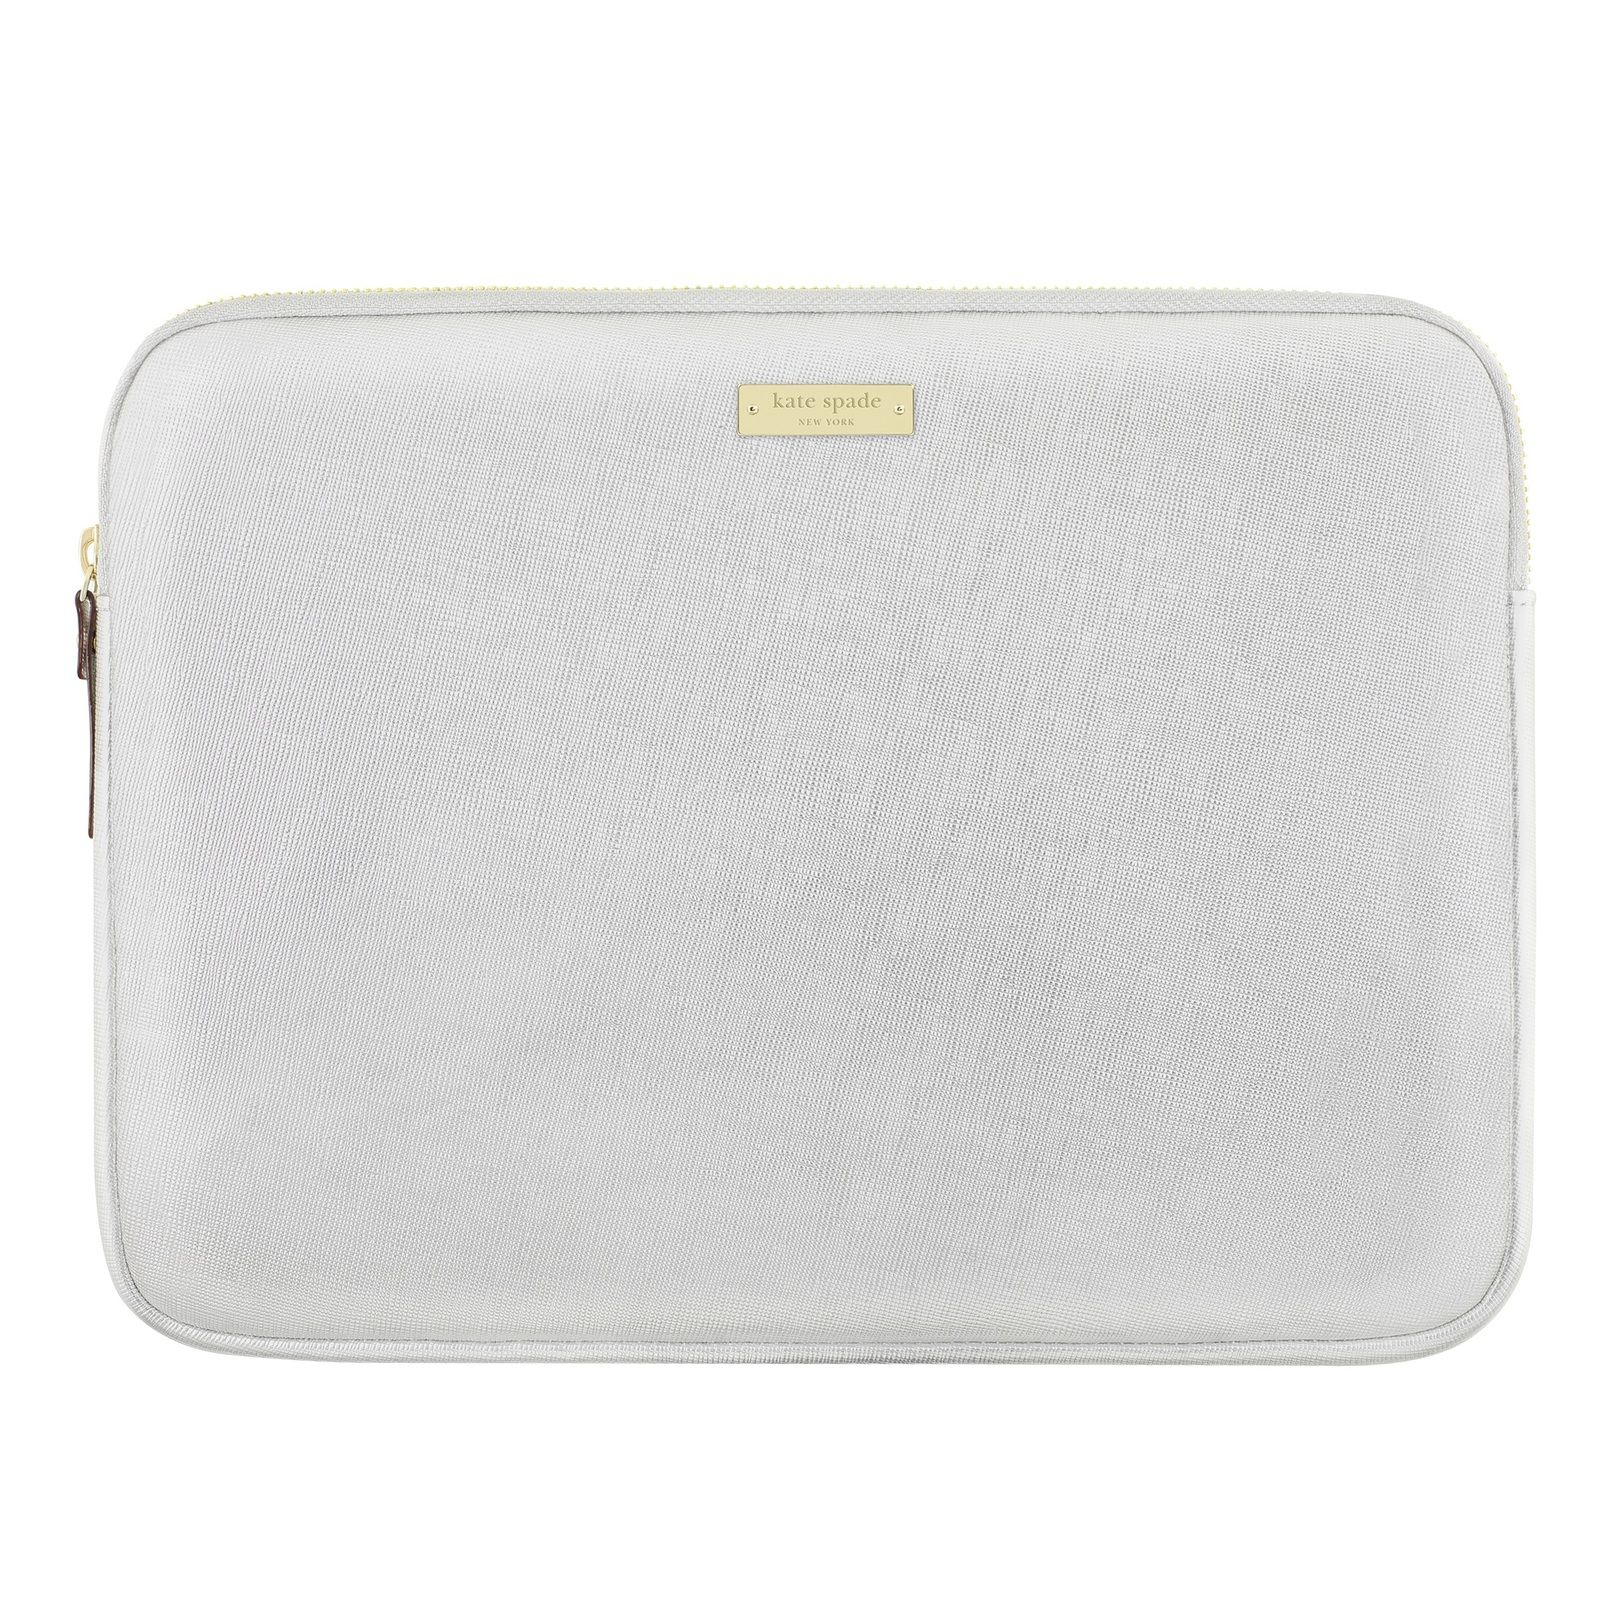 "Kate Spade 12.5"" Saffiano Sleeve for Surface Pro in Metallic Silver"